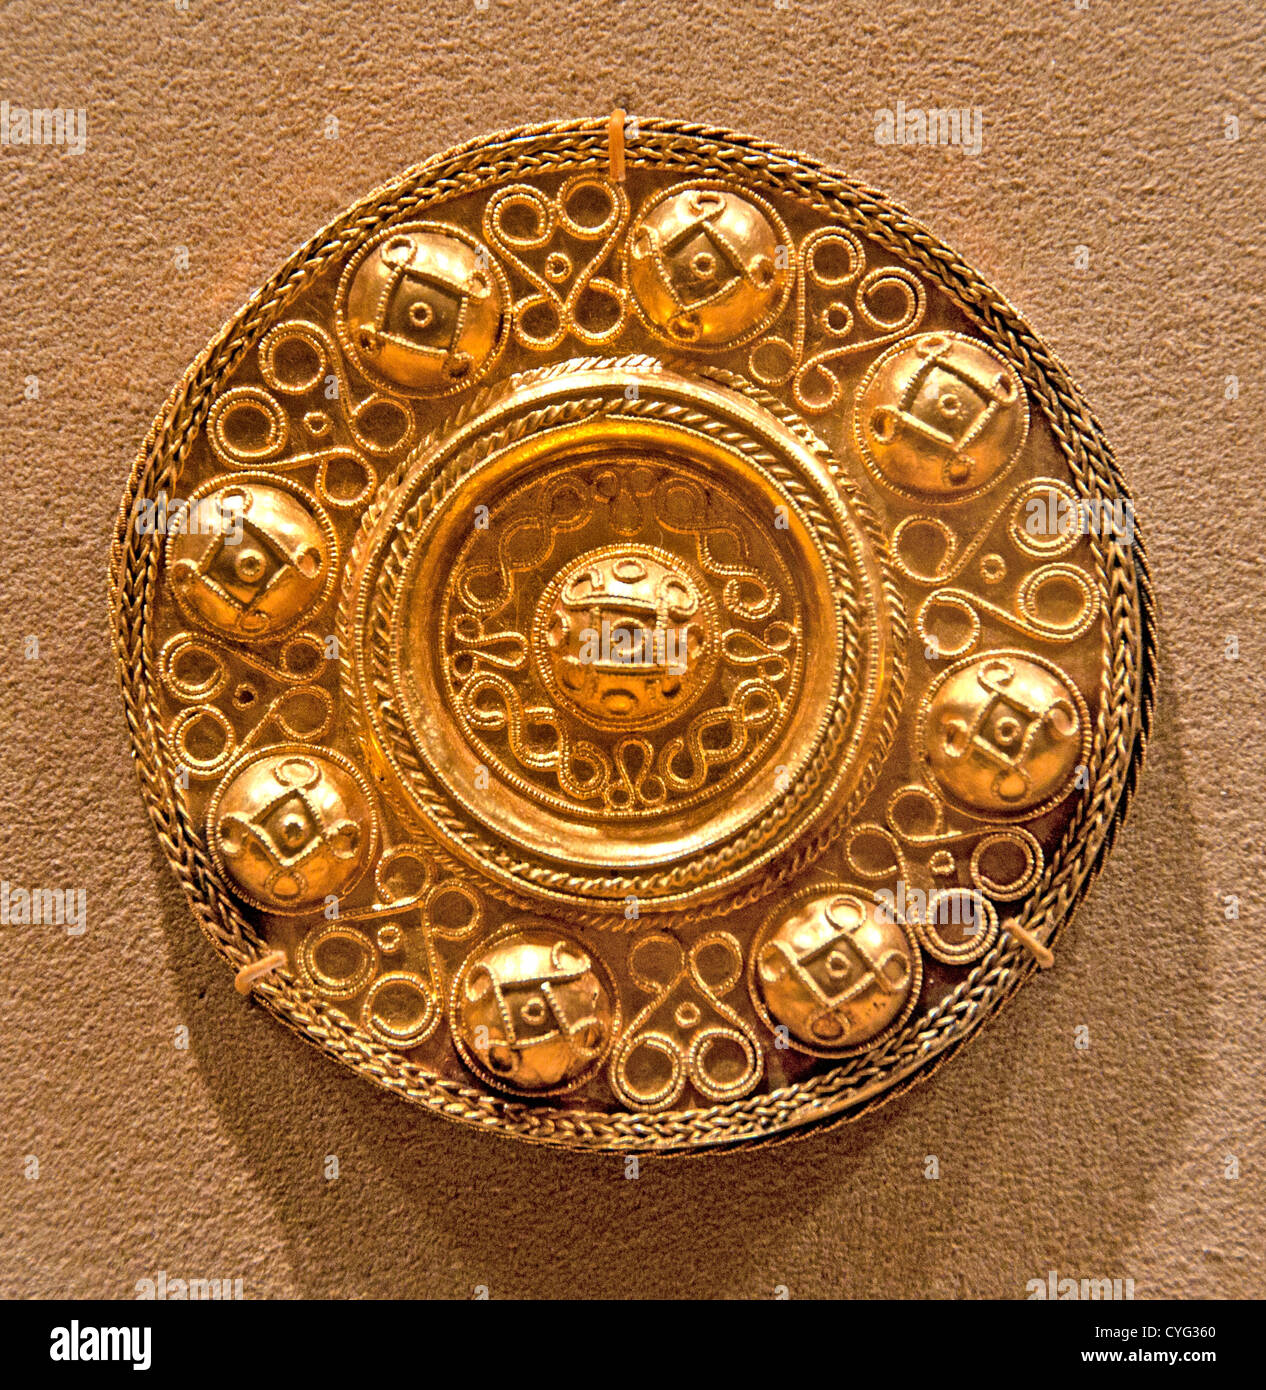 Disk Brooch 600 Langobardic Gold wire filigree 8 cm Lombards  Langobards Germanic German tribe 568 - 790 Kingdom - Stock Image